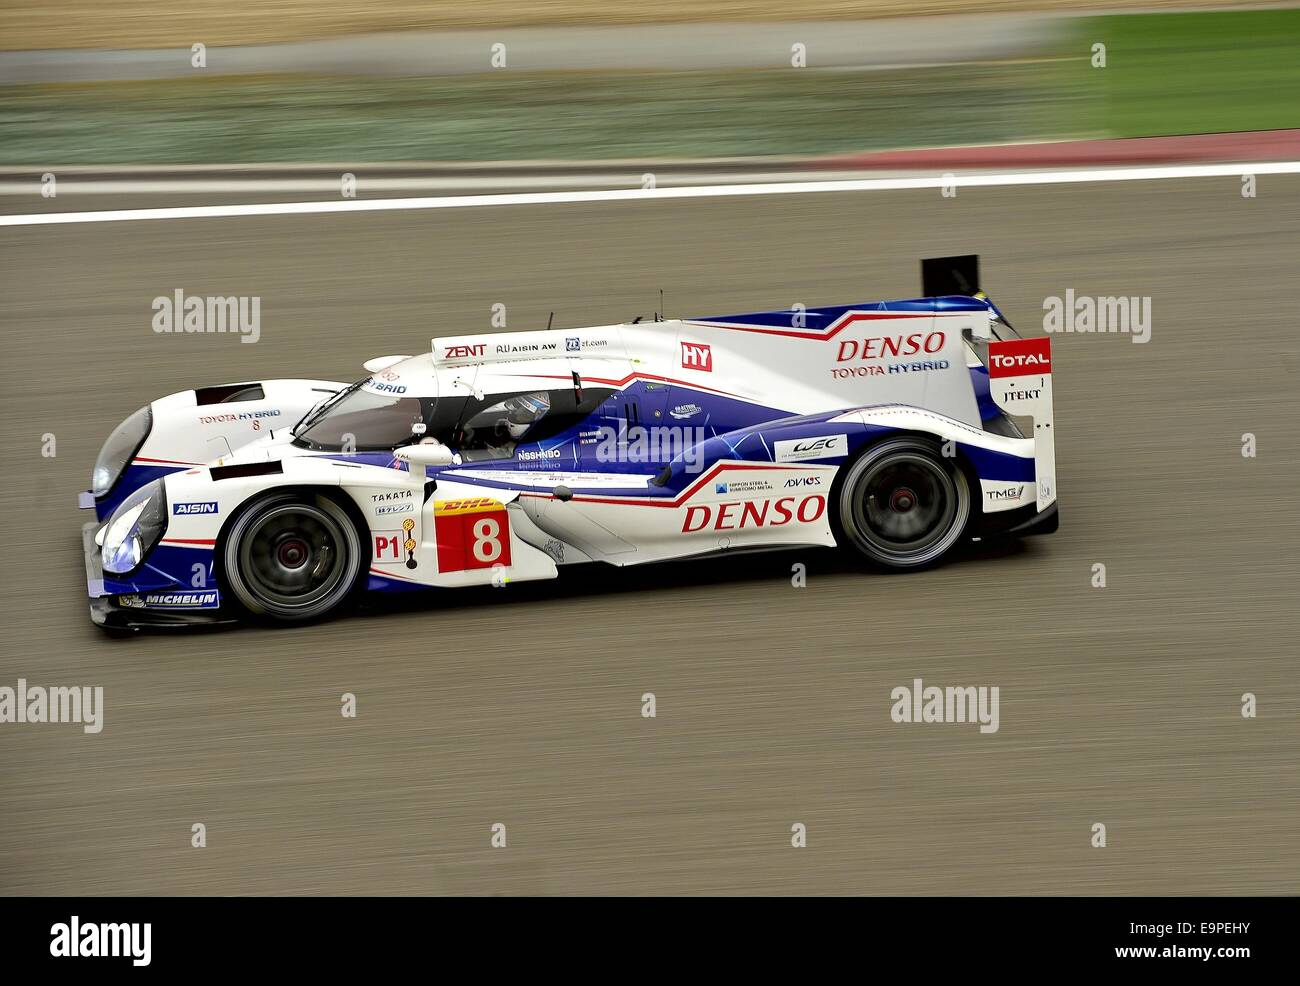 Shanghai, China. 31st October, 2014. Toyota Racing, Toyota TS 040 - Hybrid, ANTHONY DAVIDSON, GBR (driver) - 2014 - Stock Image